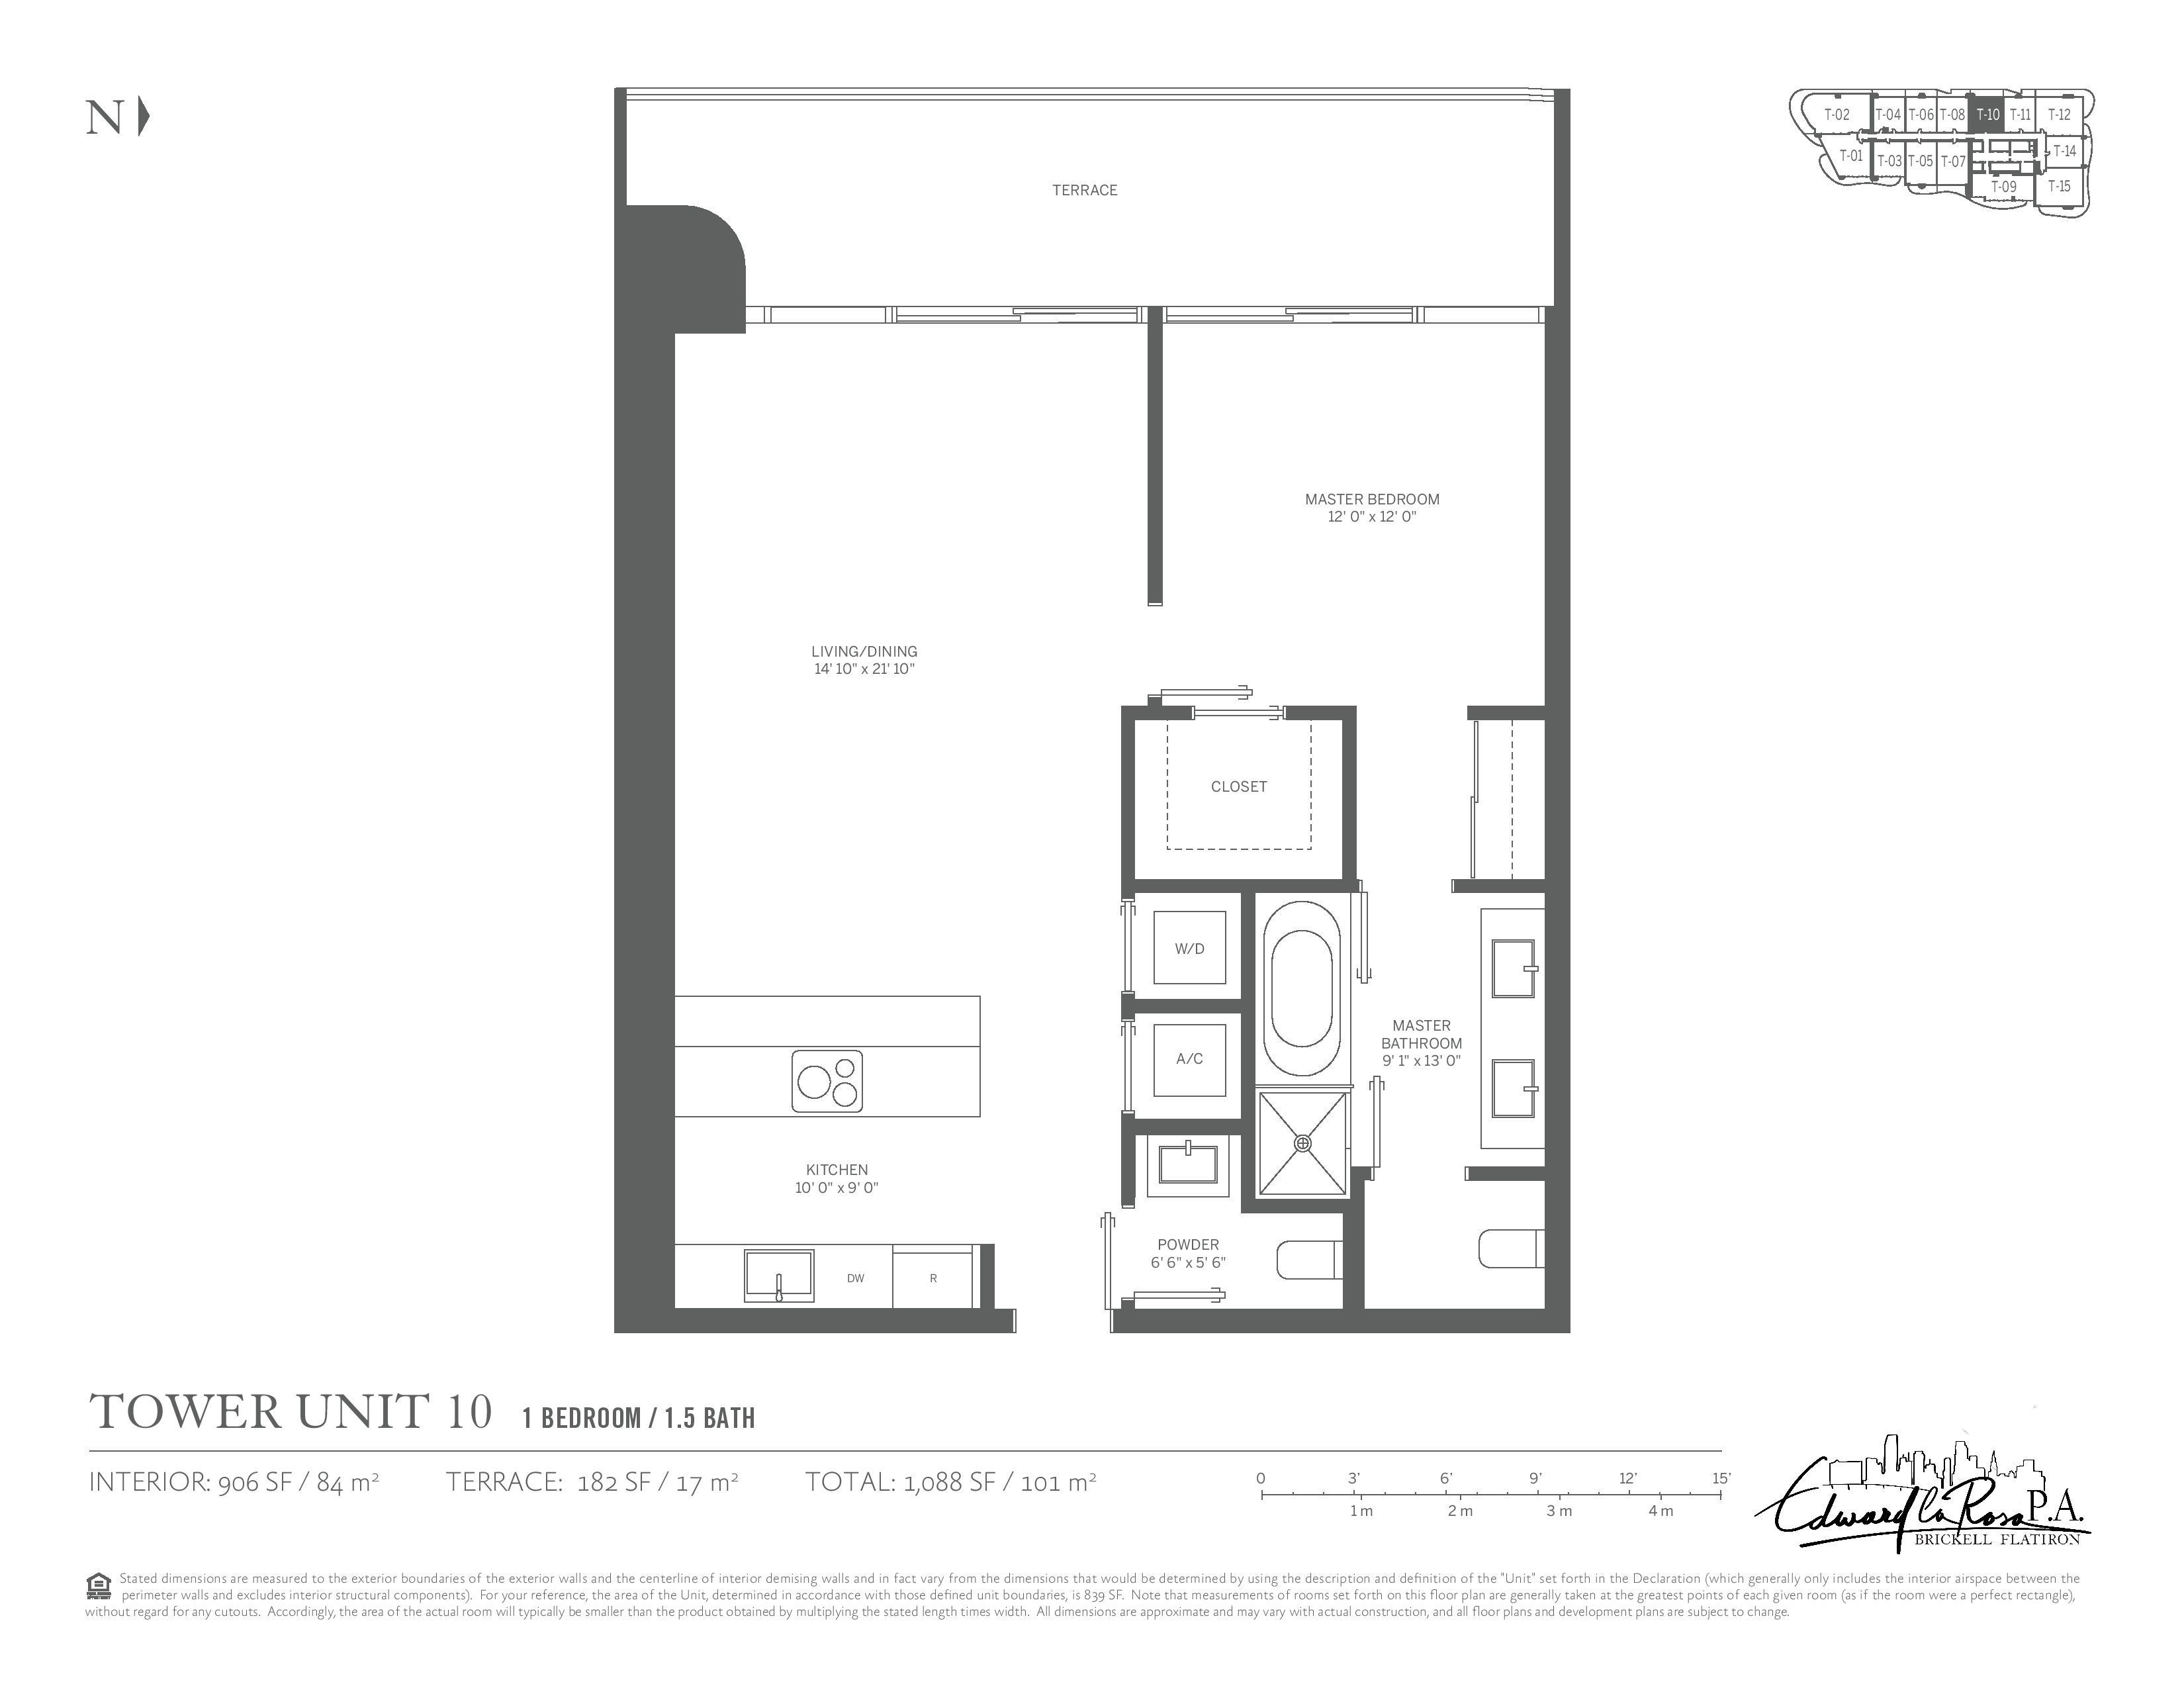 floor plans brickell flatiron miami florida